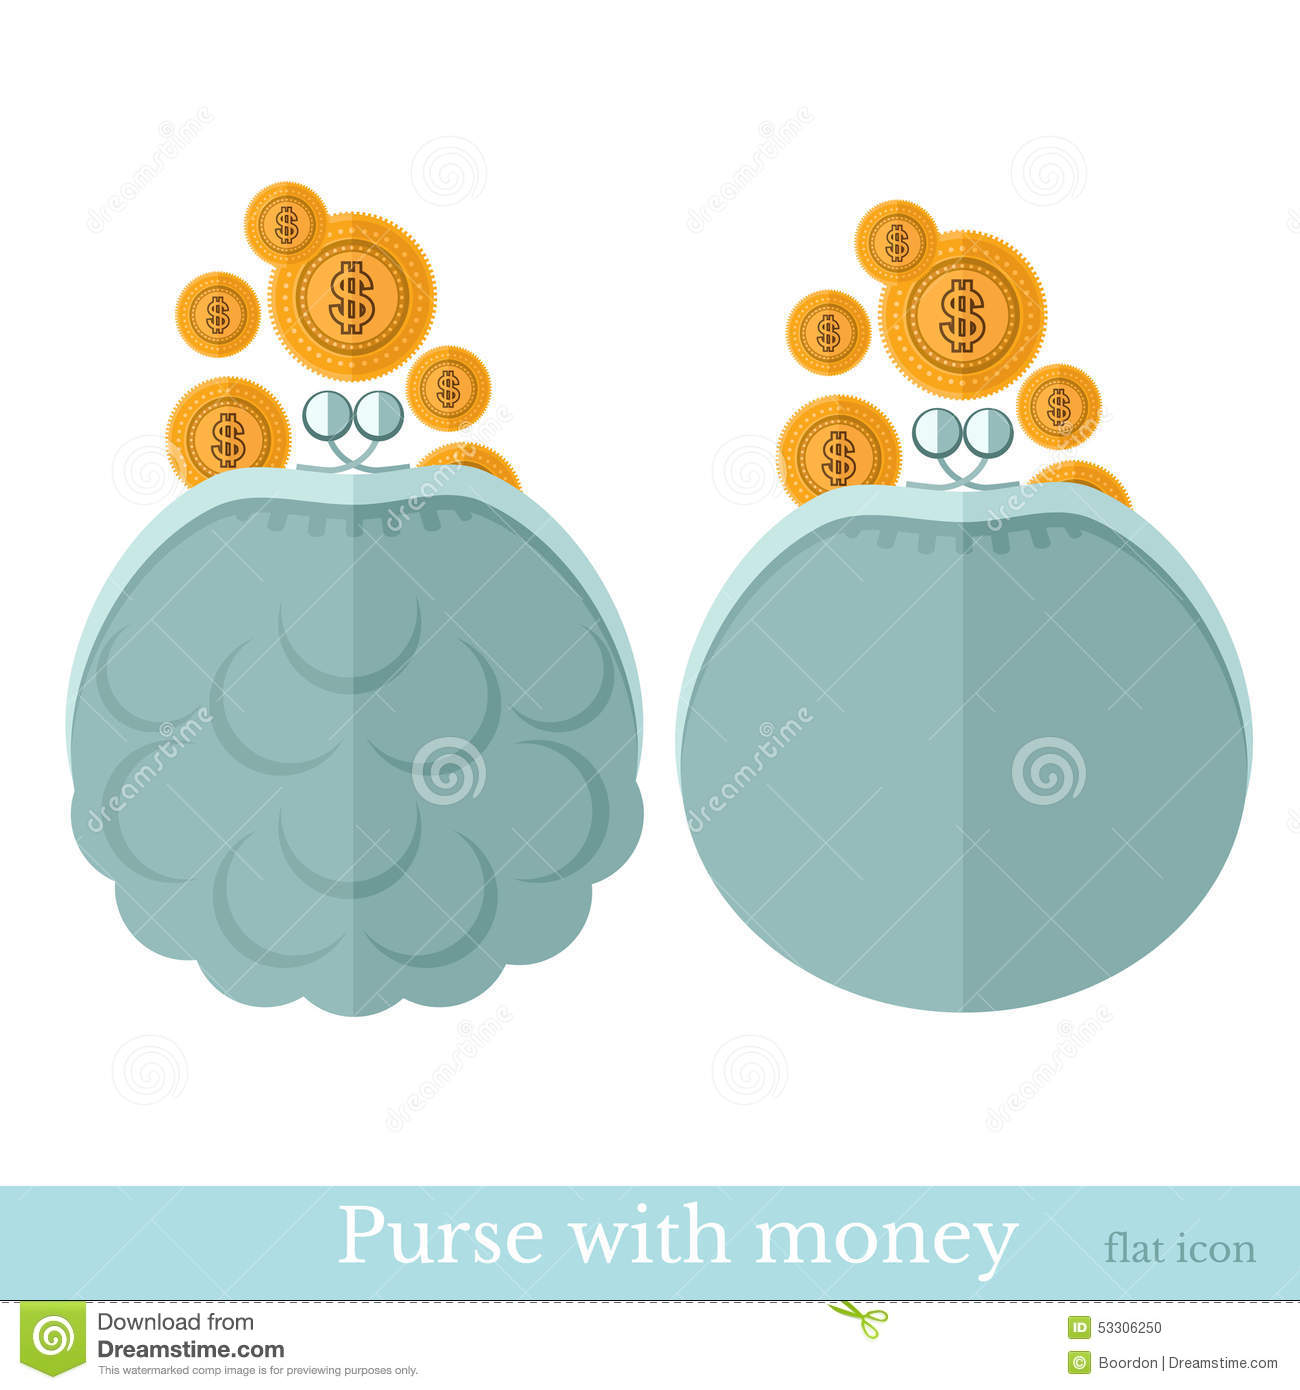 Flat purse or pouch with gold coins